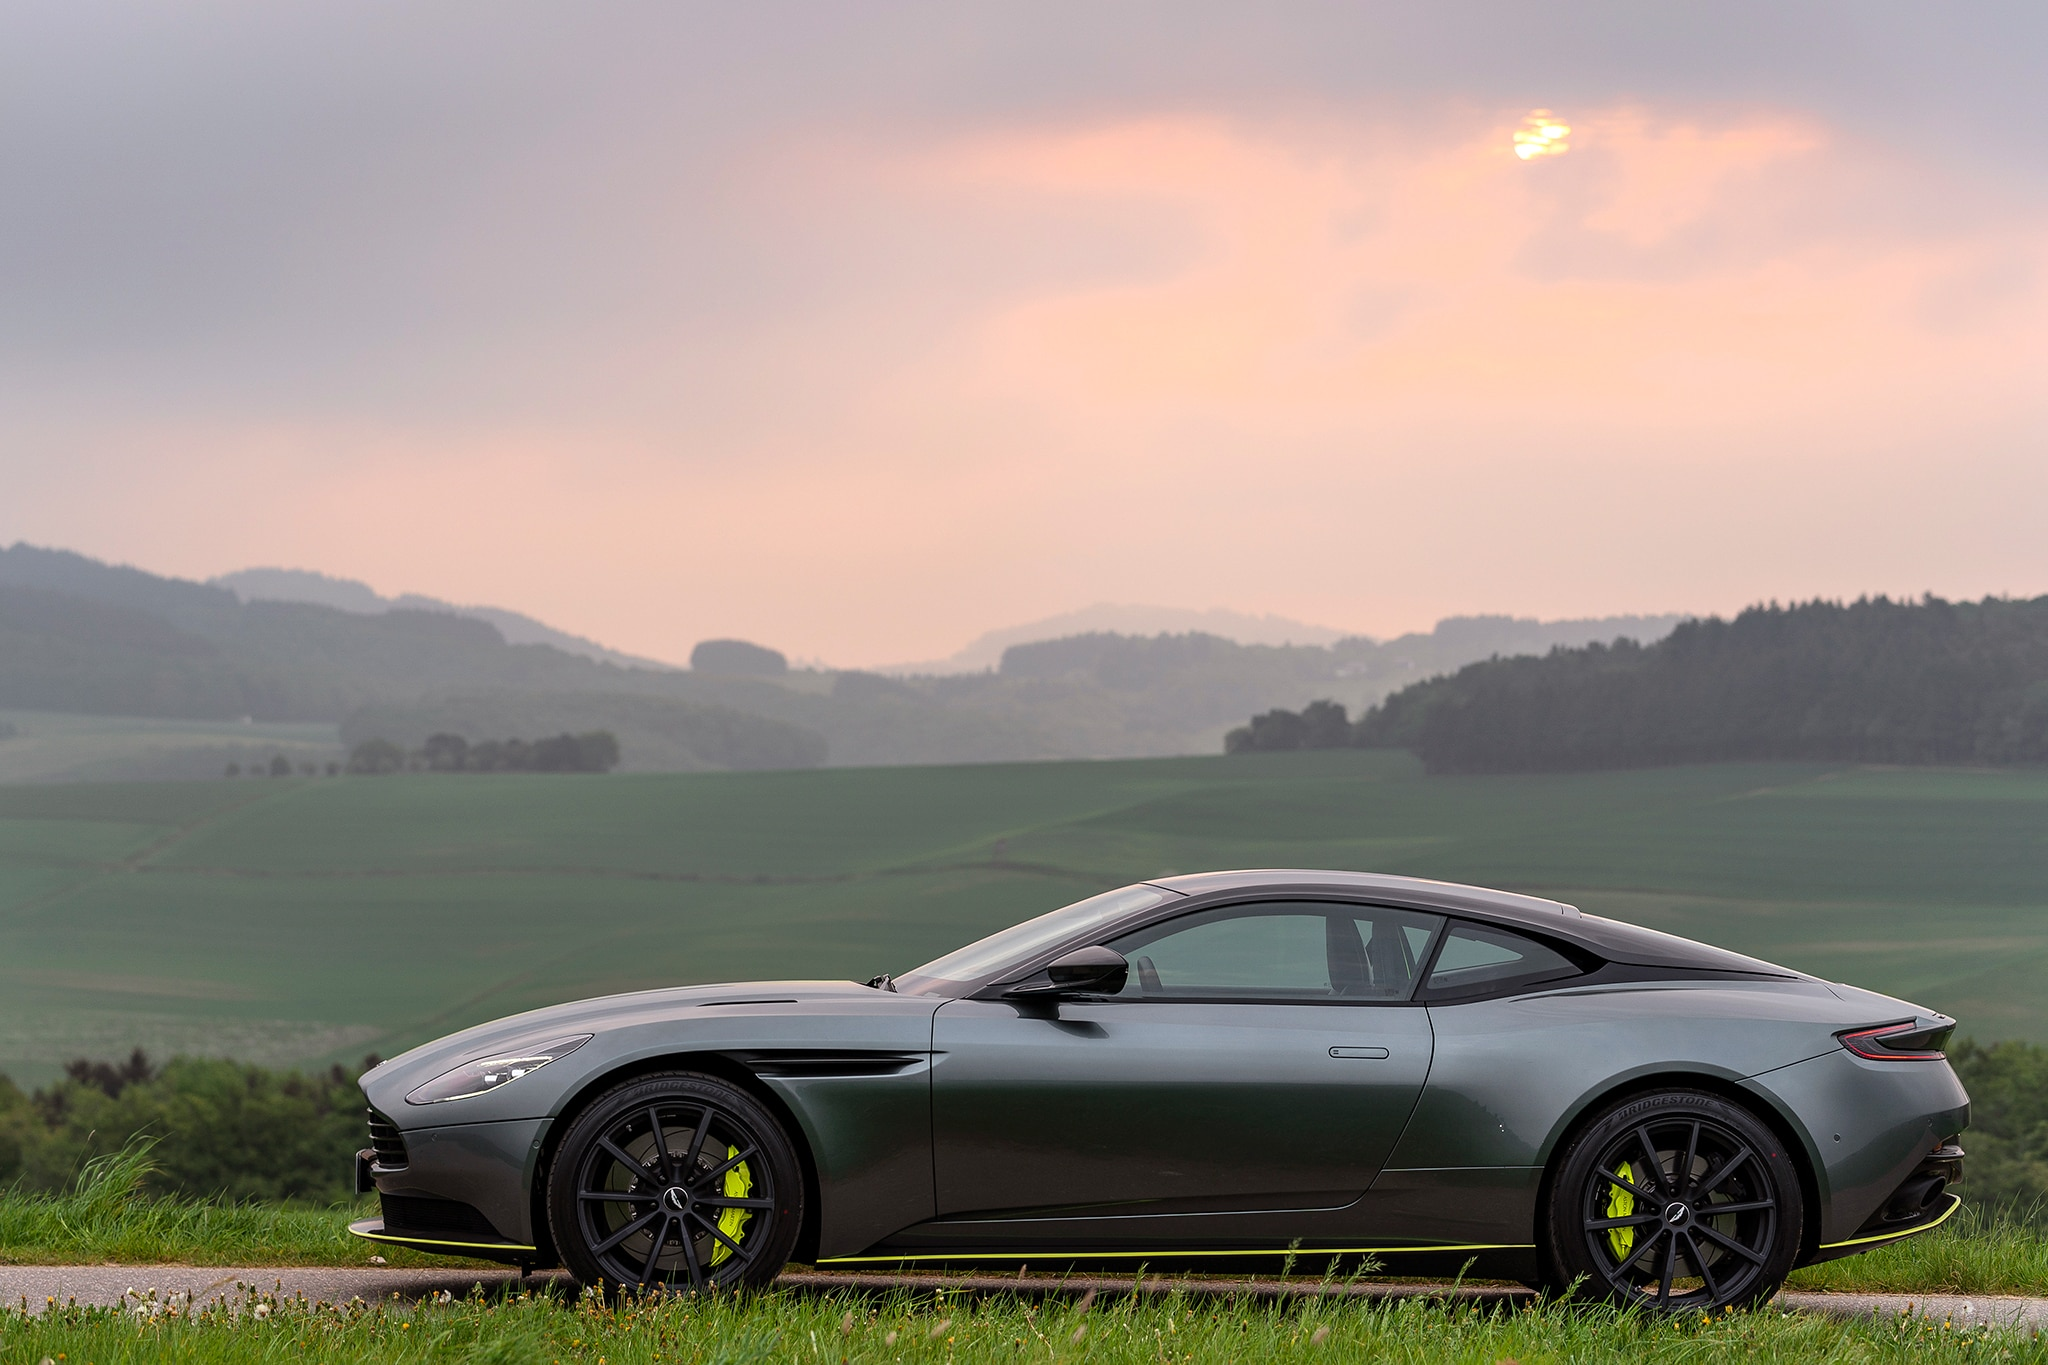 2019 aston martin db11 amr signature edition first drive review automobile magazine. Black Bedroom Furniture Sets. Home Design Ideas